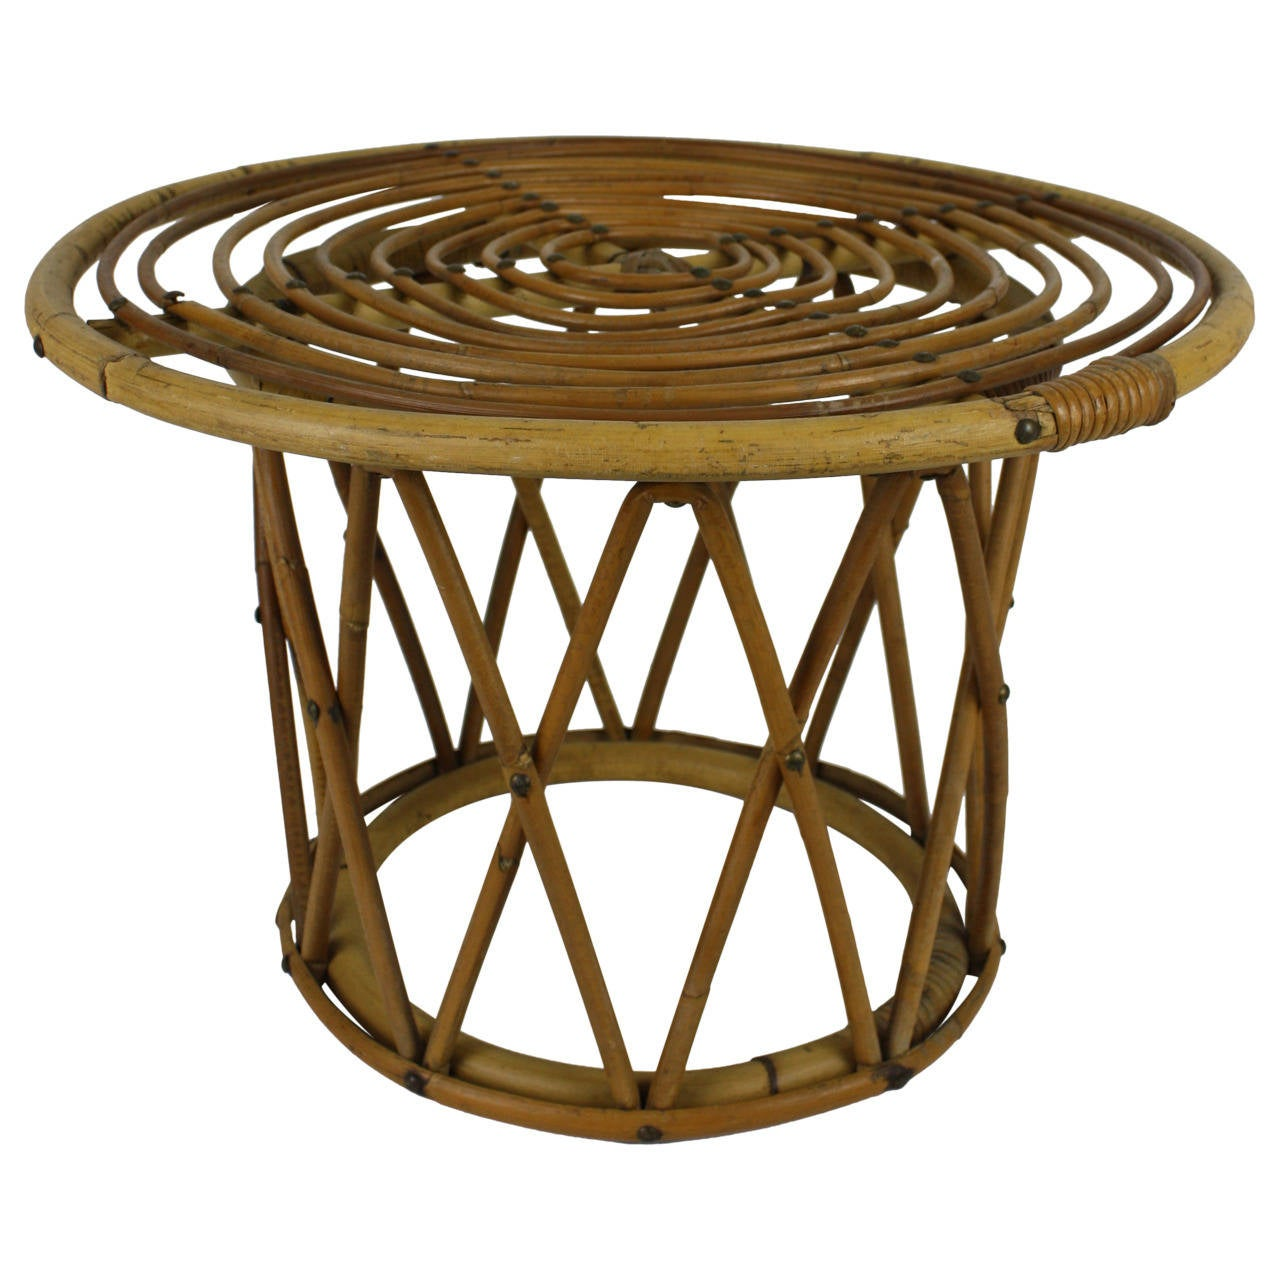 Spanish 1950s Handcrafted Bamboo and Rattan Coffee Table or Side Table